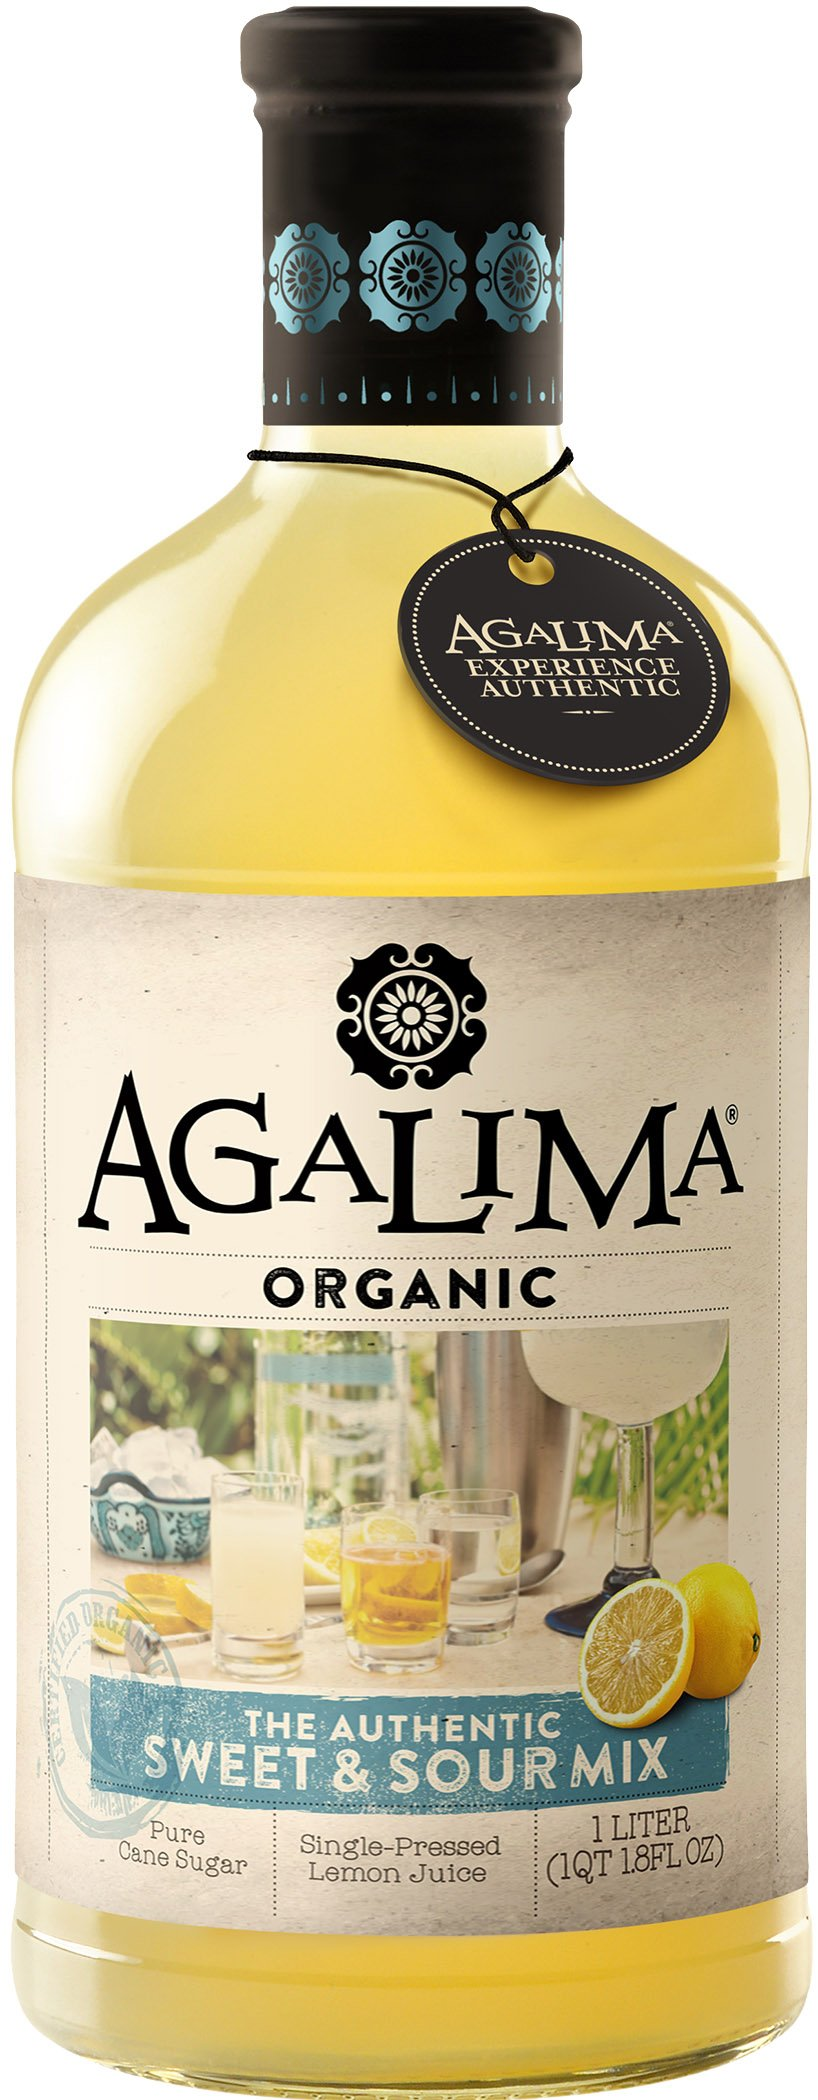 Agalima Organic Authenic Sweet & Sour Drink Mix, All Natural, 1 Liter (33.8 Fl Oz) Glass Bottle, Individually Boxed